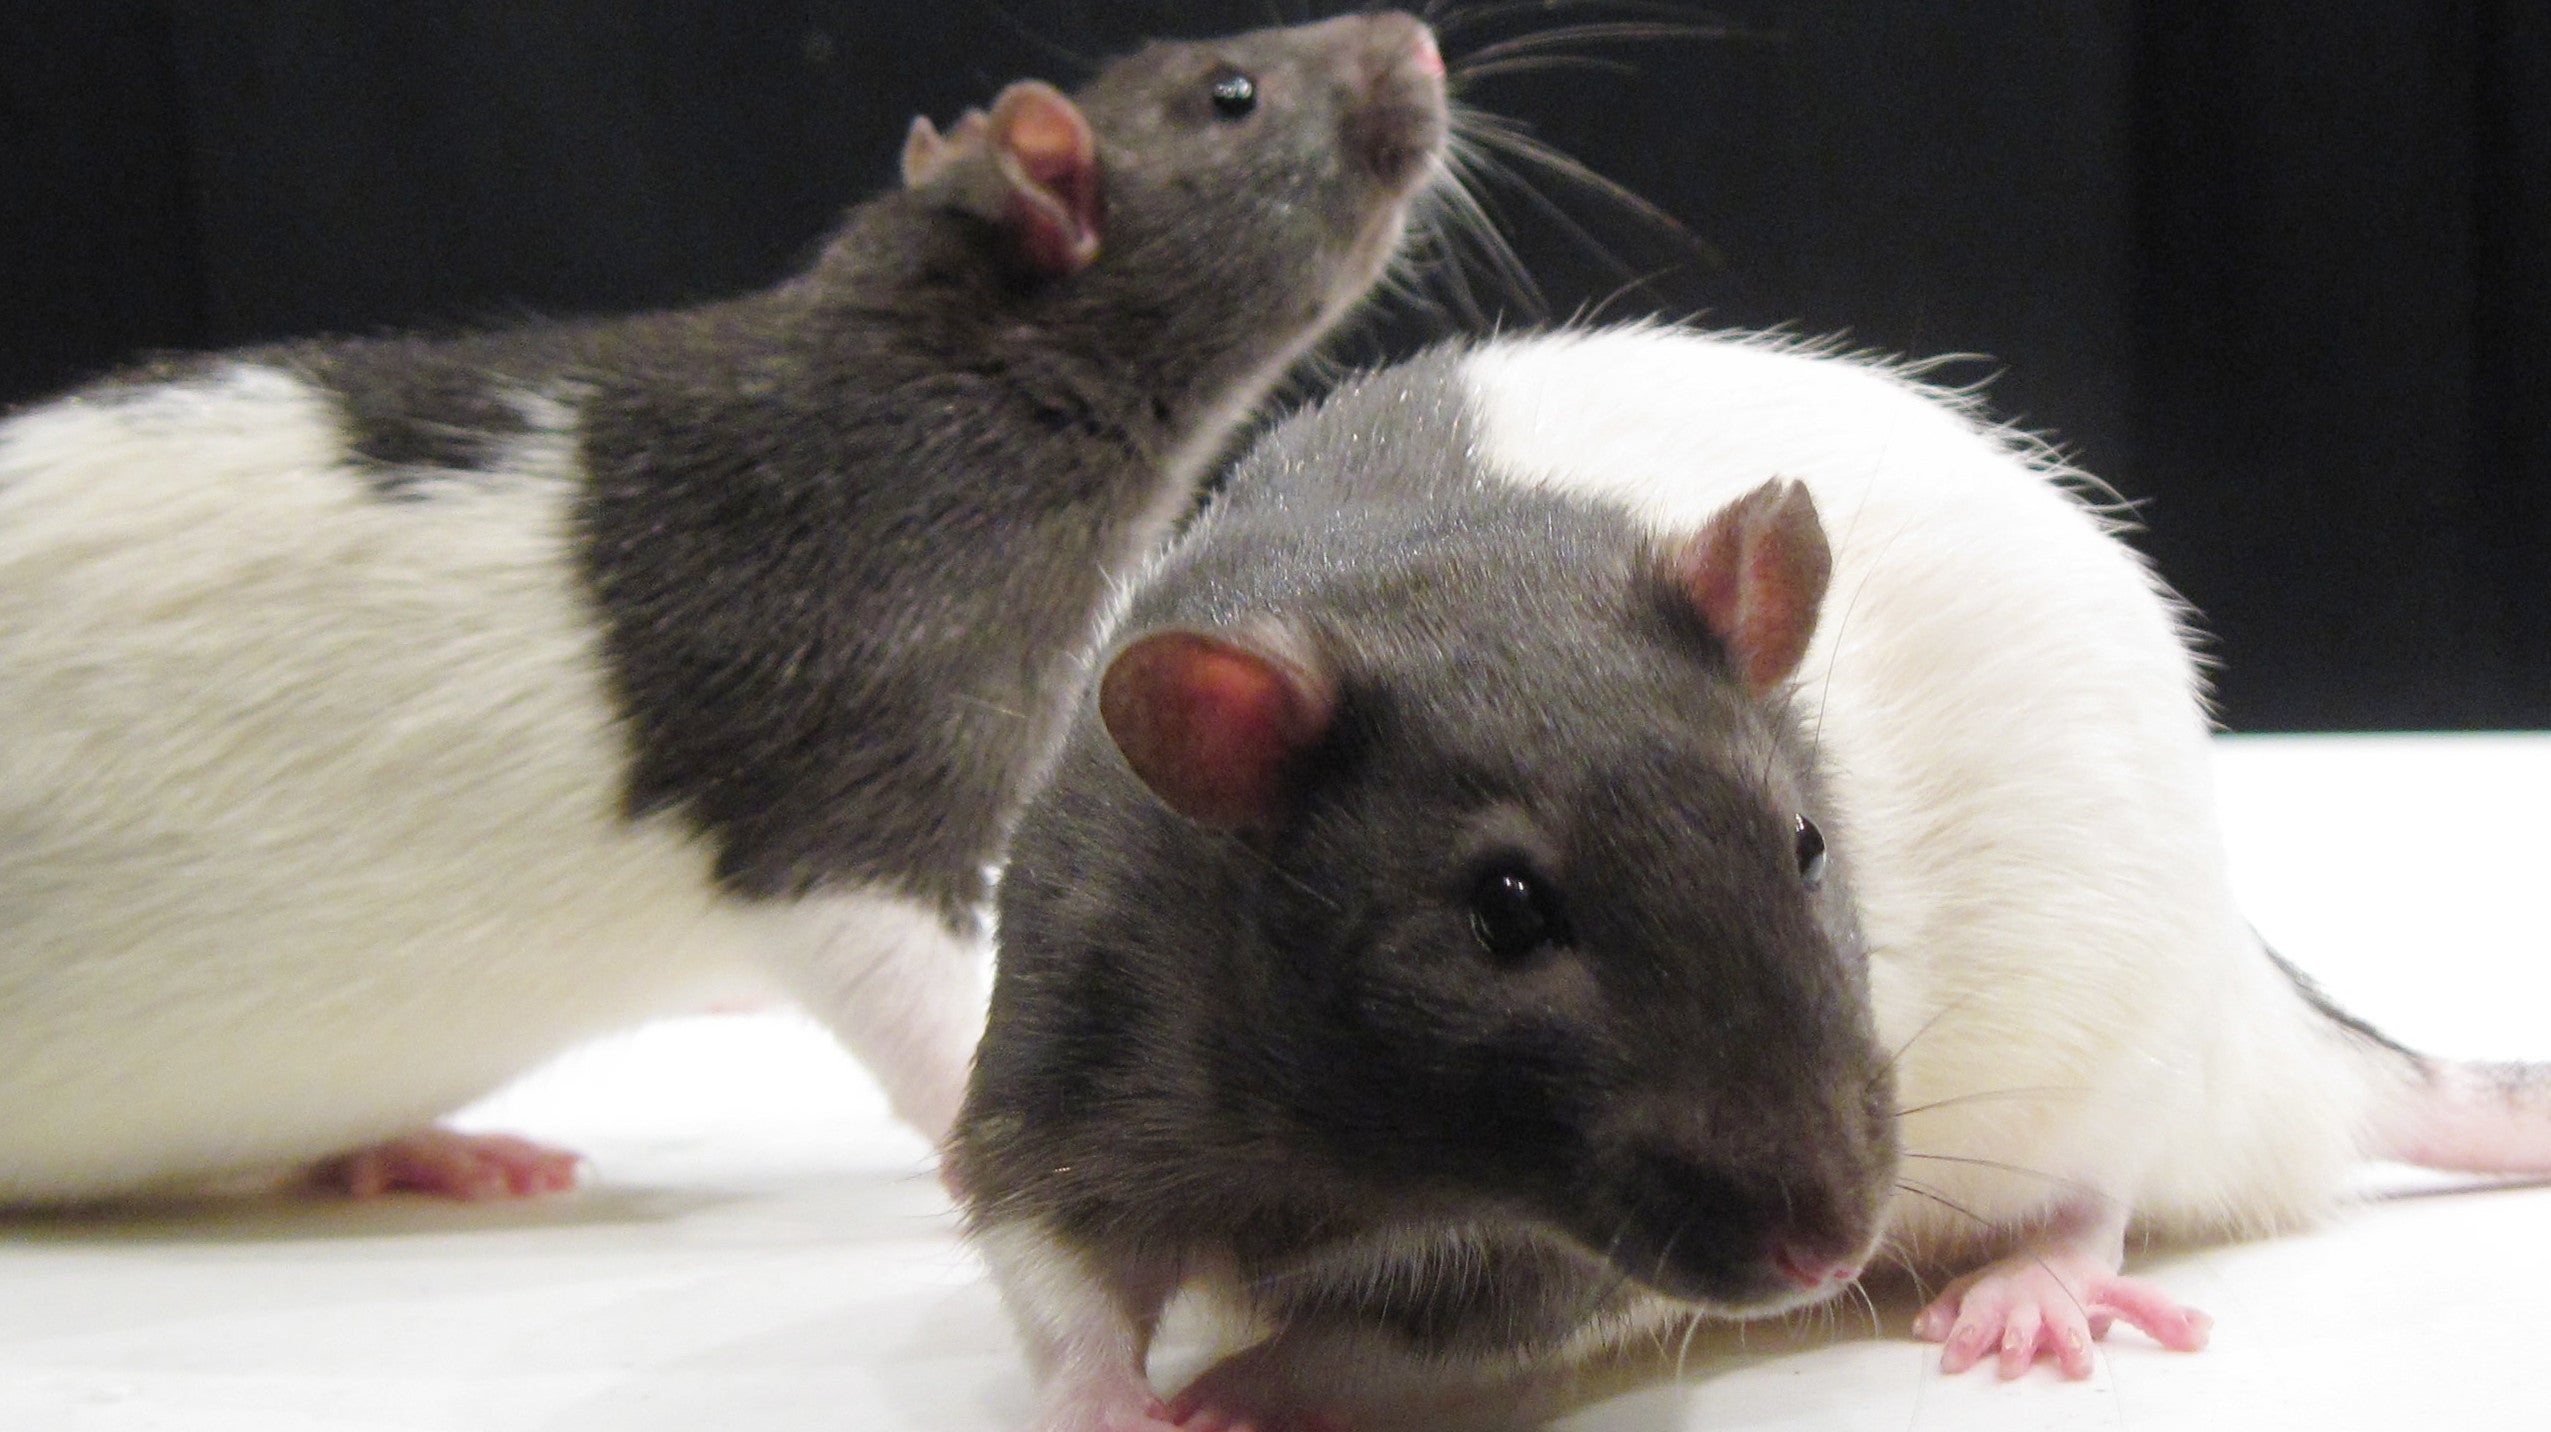 A Rat Study Finds That Acupuncture Can Treat Alcohol Addiction… In Rats